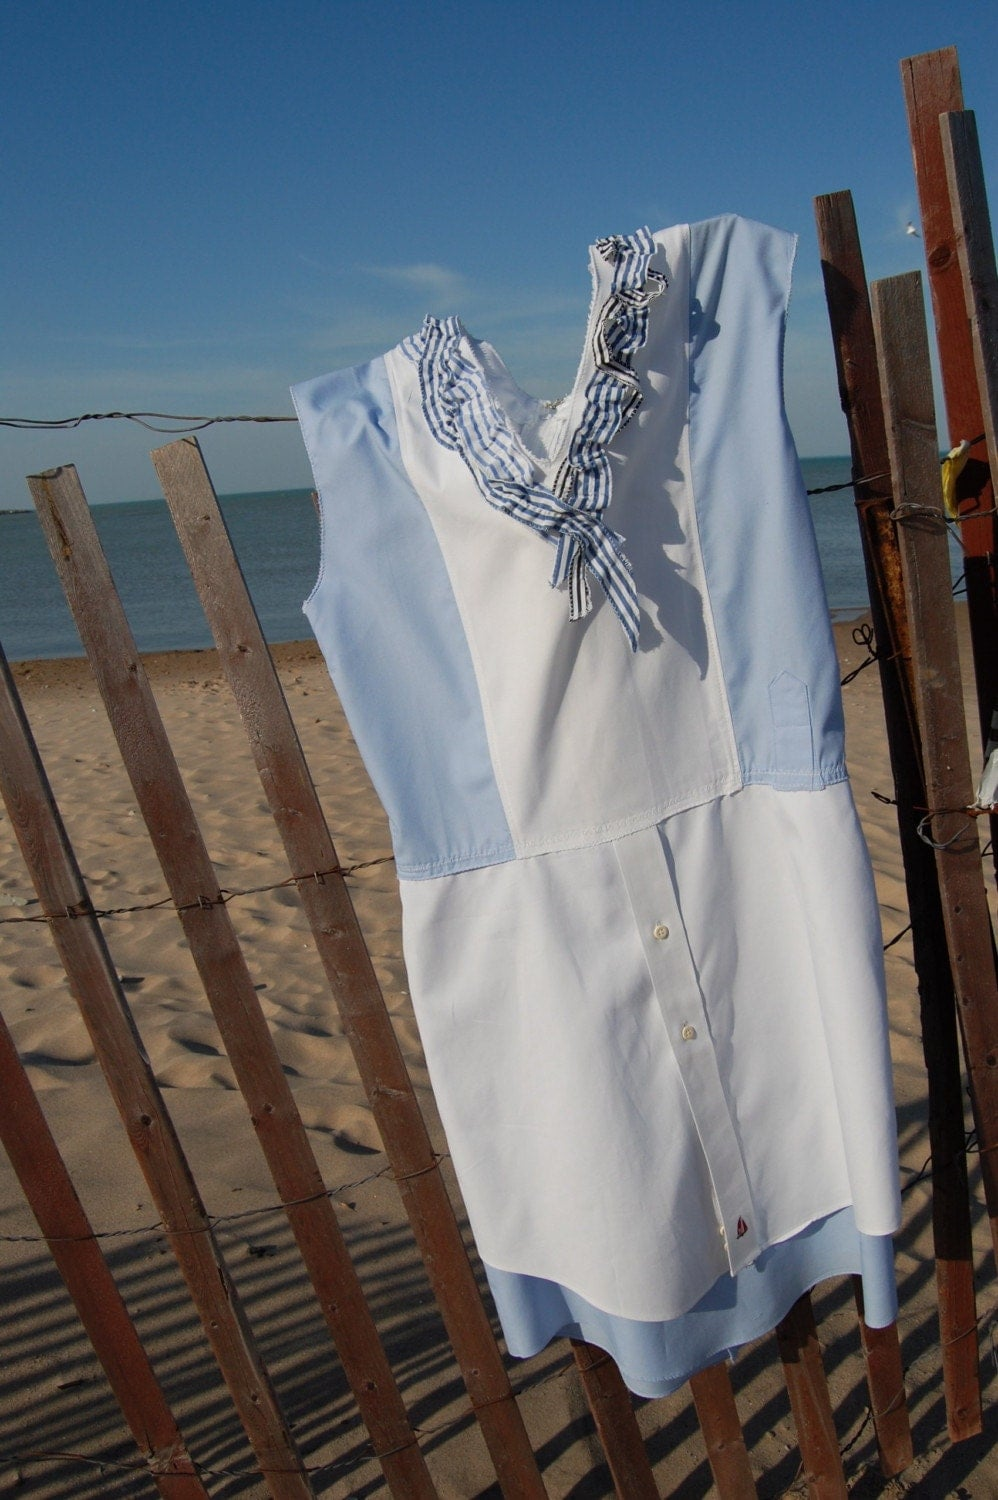 Summer Dress made from recycled men's dress shirts - Shirtback Dress I